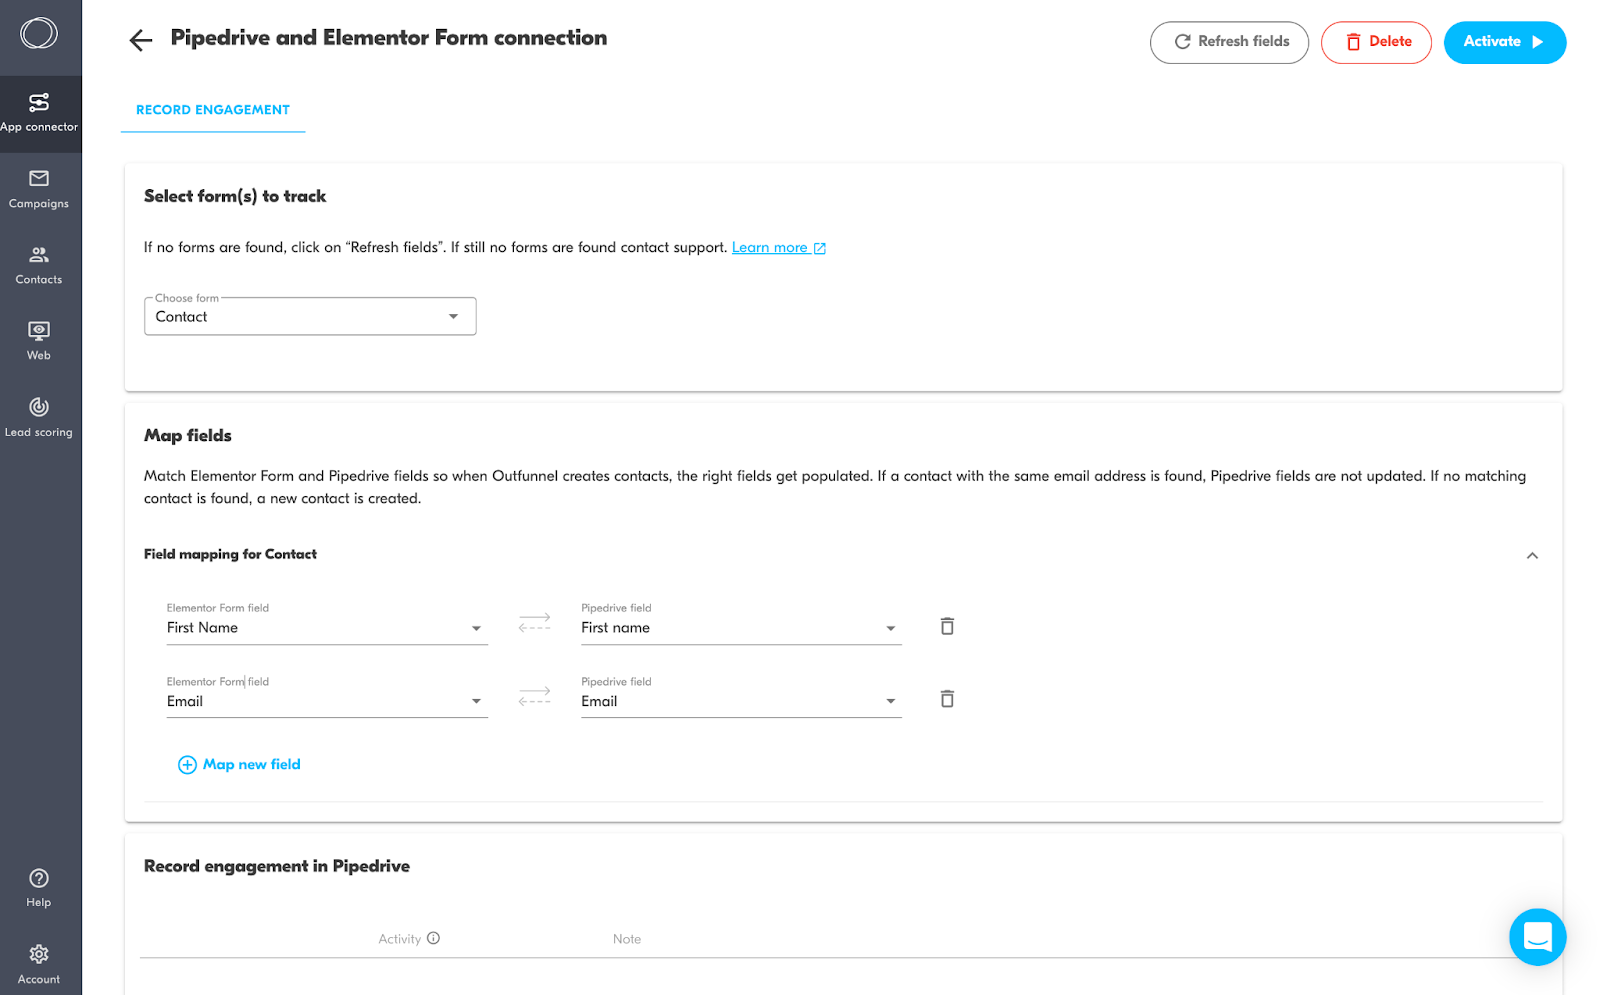 Pipedrive and Elementor Forms connection